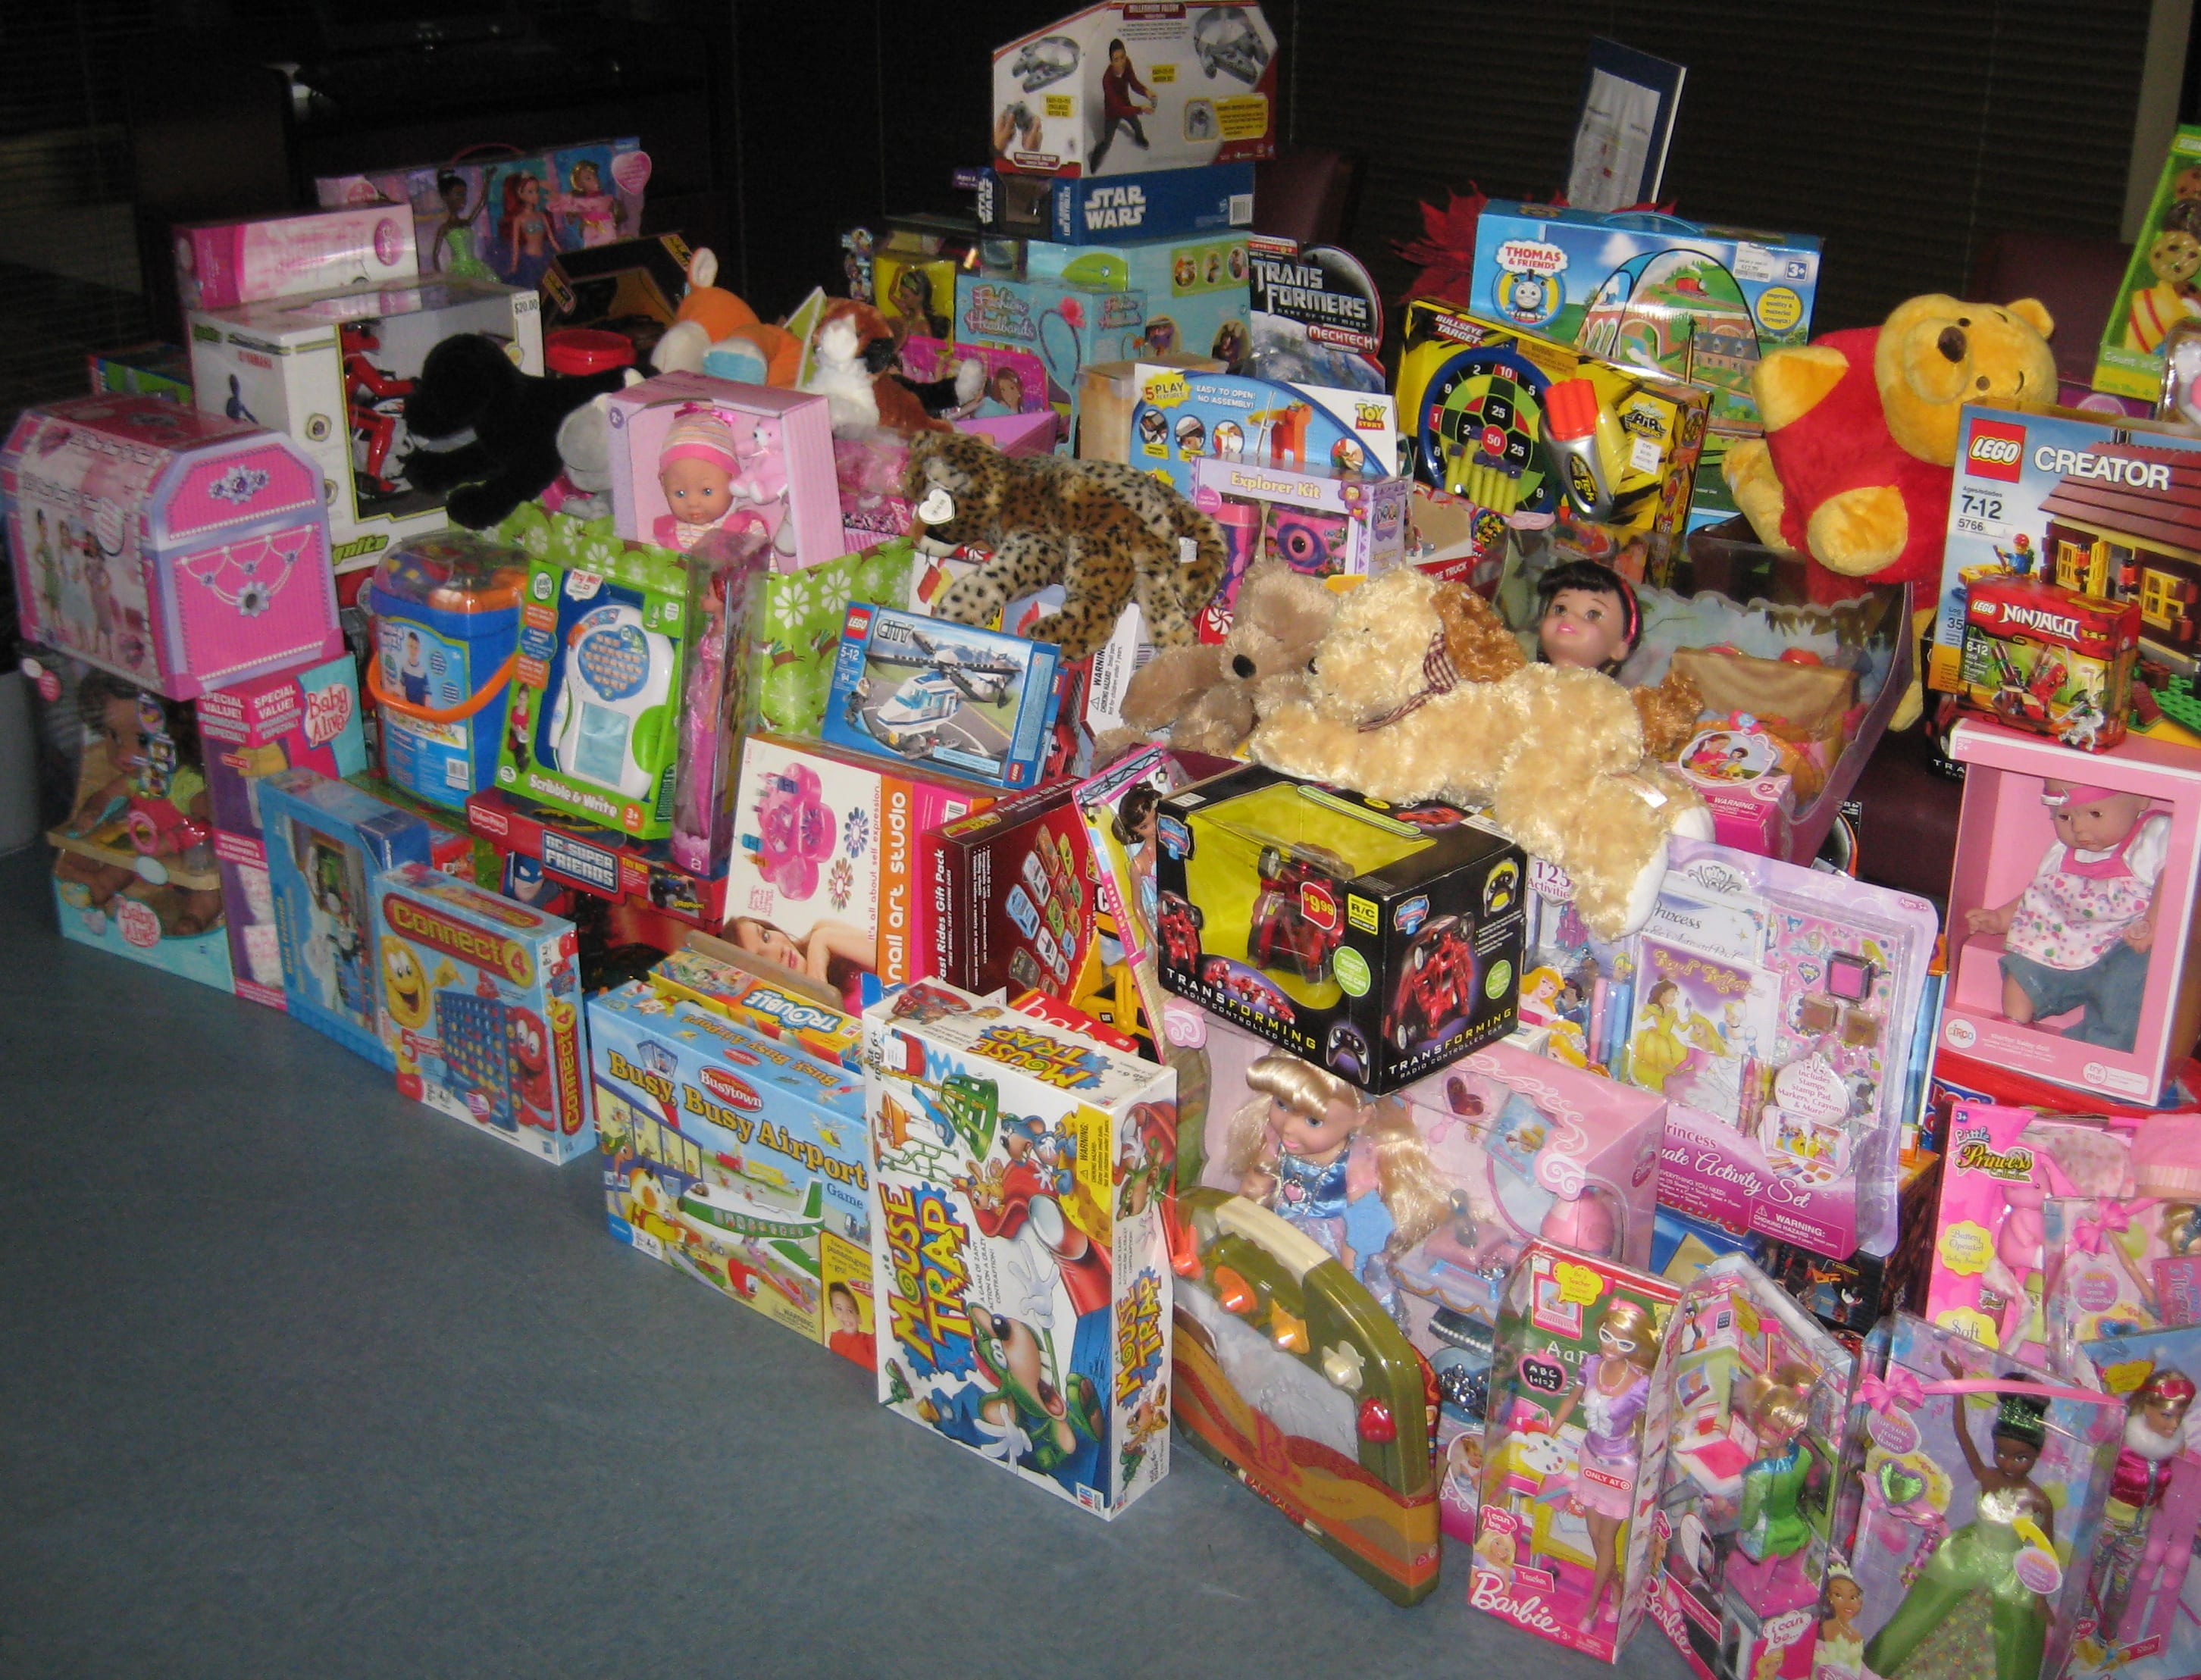 Toys collected for Children's Medical Center in SMU's 2011 Toys for Tickets holiday program